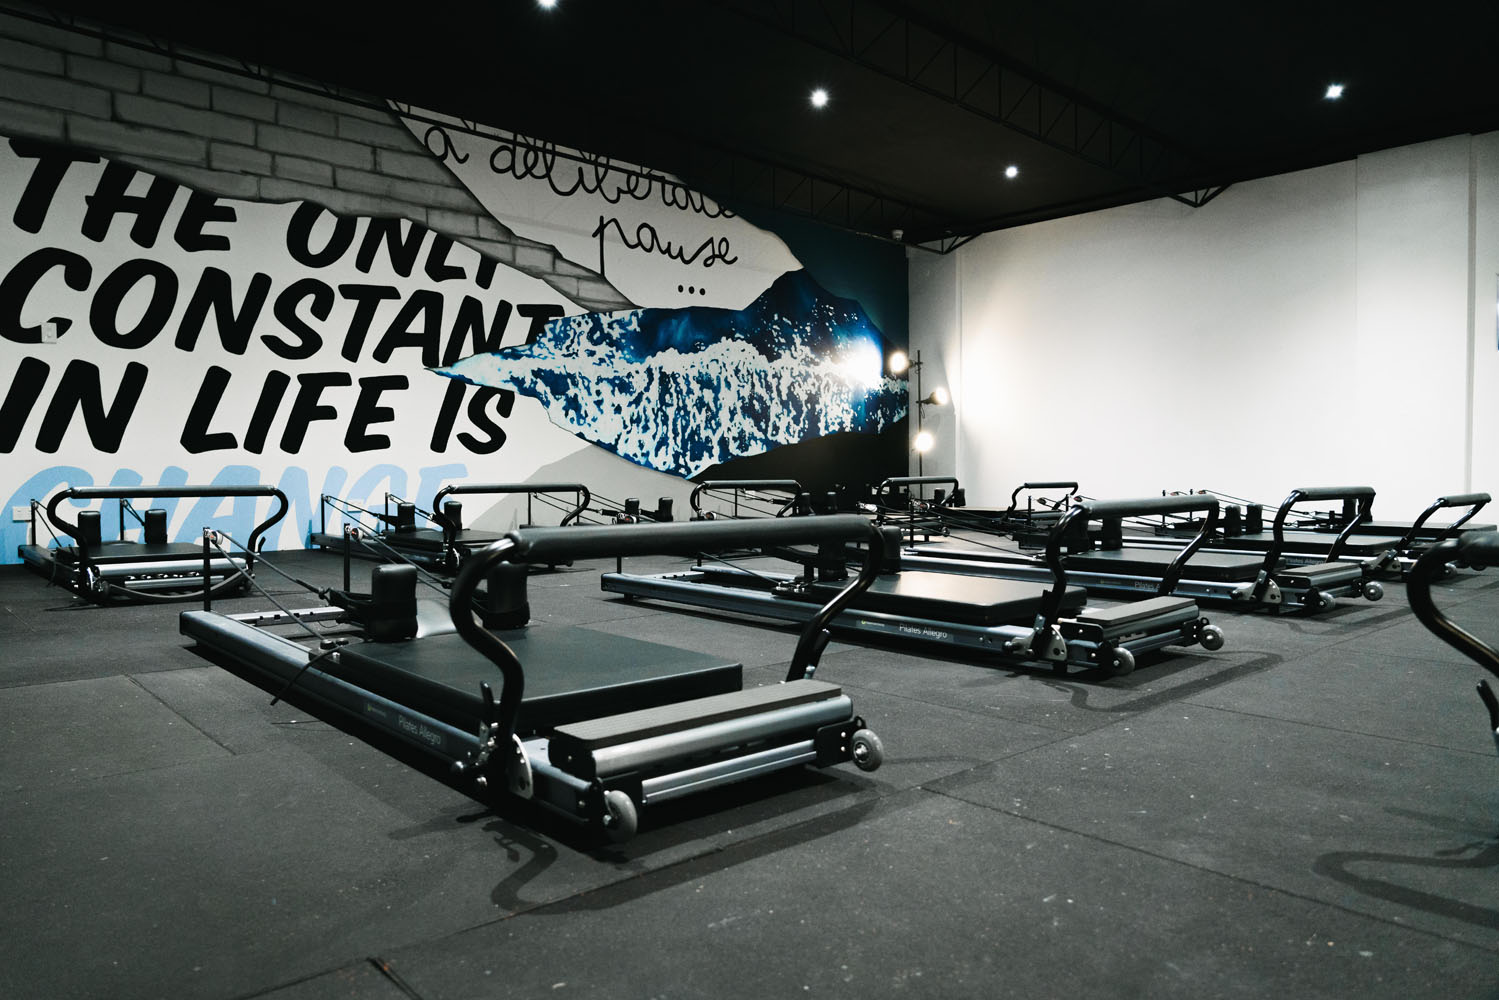 the-art-of-wall-studio-elipsis-mural-hand-painted-wall-art-lettering-ocean-quote-gym-mural-2